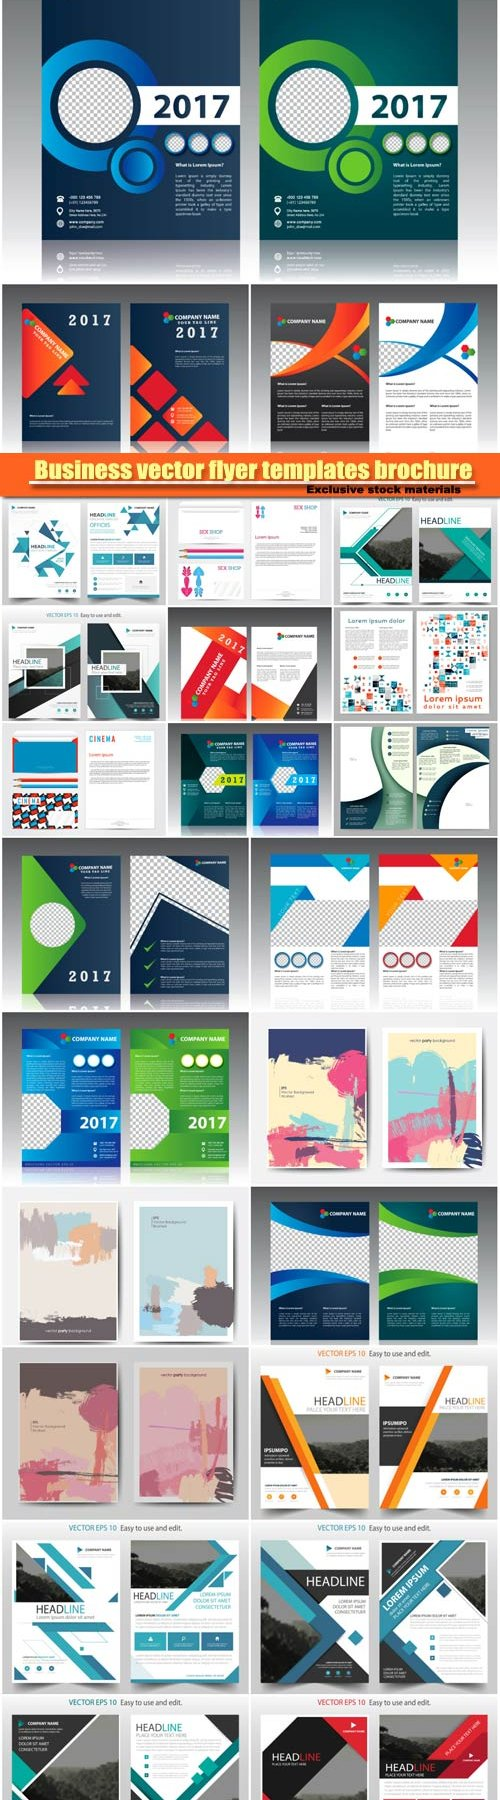 Business vector flyer templates brochure